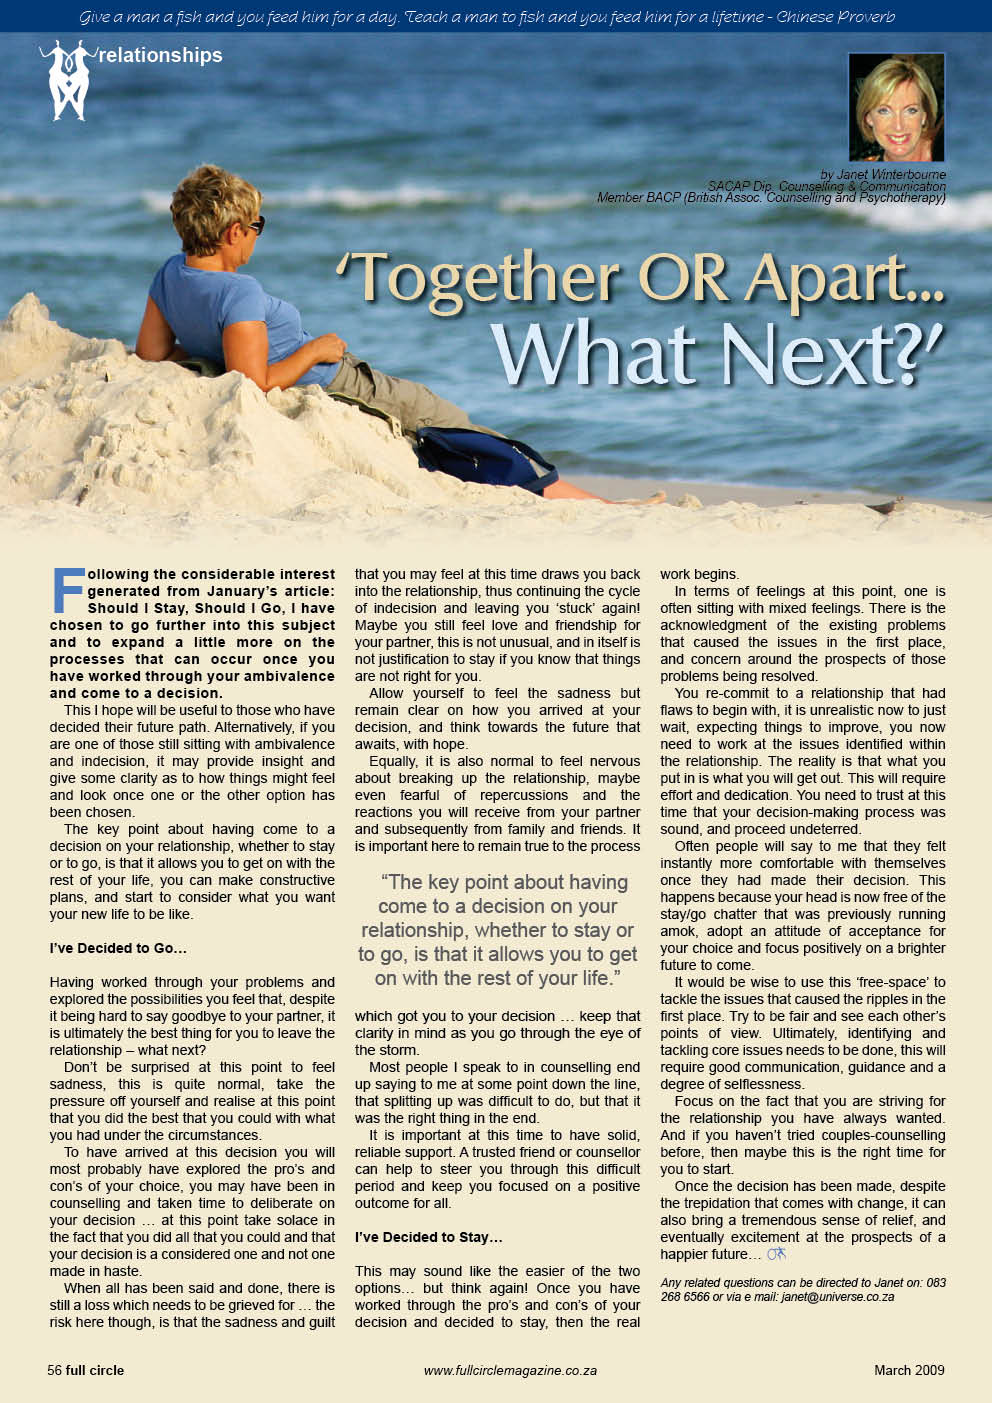 Together or Apart Psychologist Cape Town